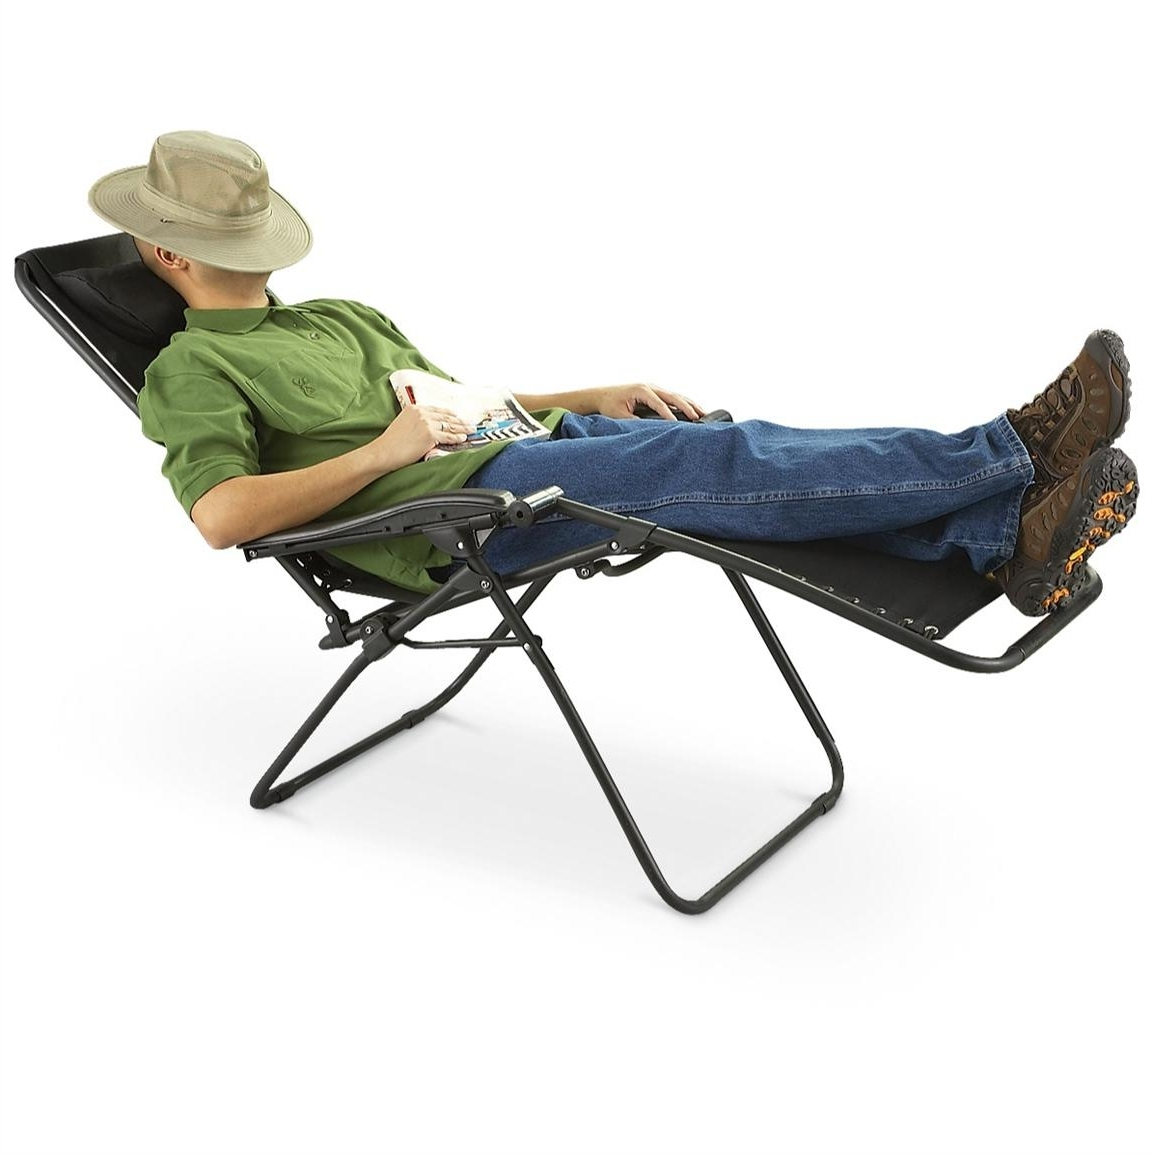 Zero Gravity Chaise Lounge Chairs For Well Liked Zero Gravity Lounge Chair – $ (View 11 of 15)